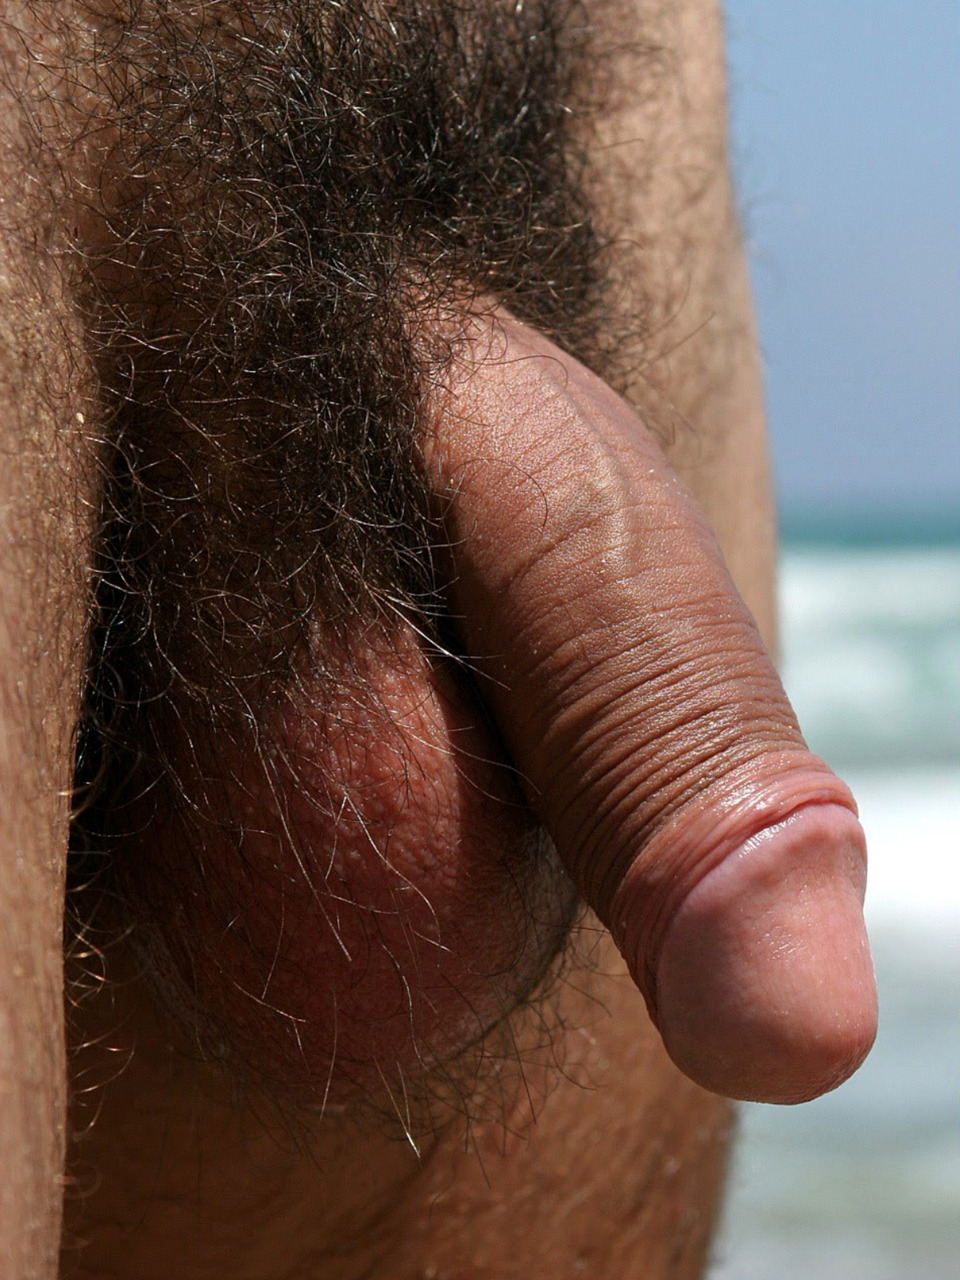 Big fat hairy dick